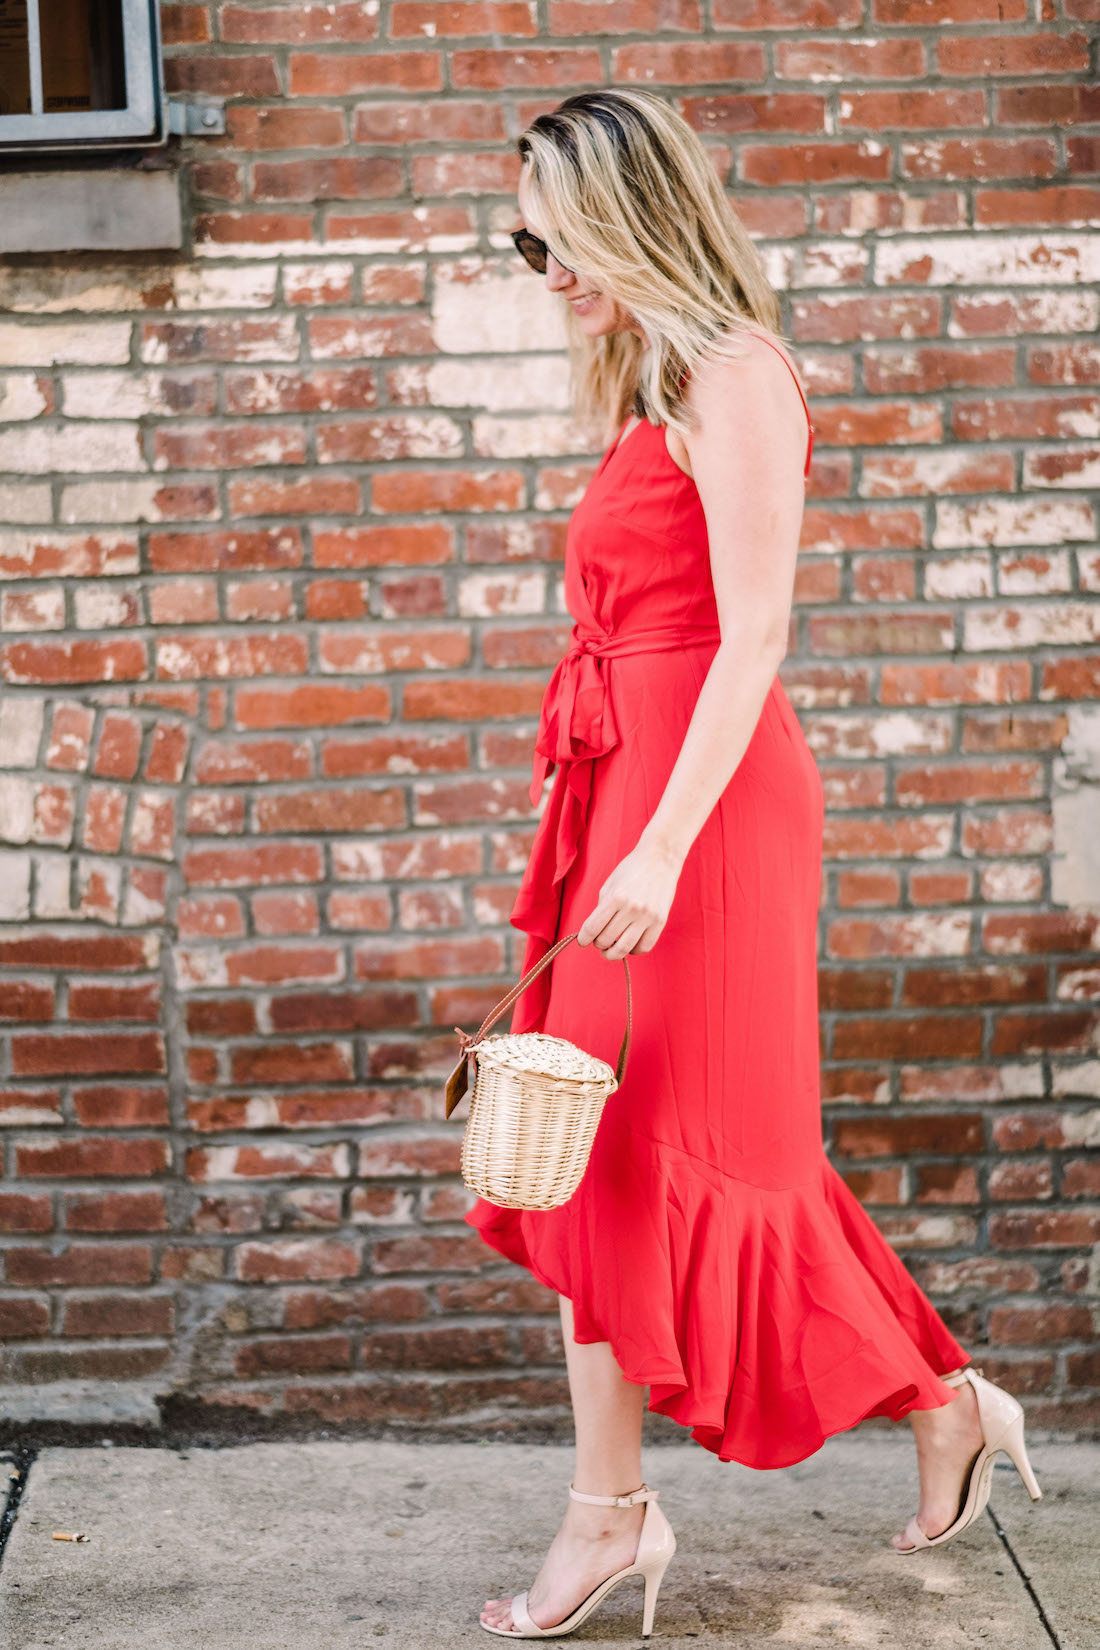 j.crew red wrap dress featured - The Stripe